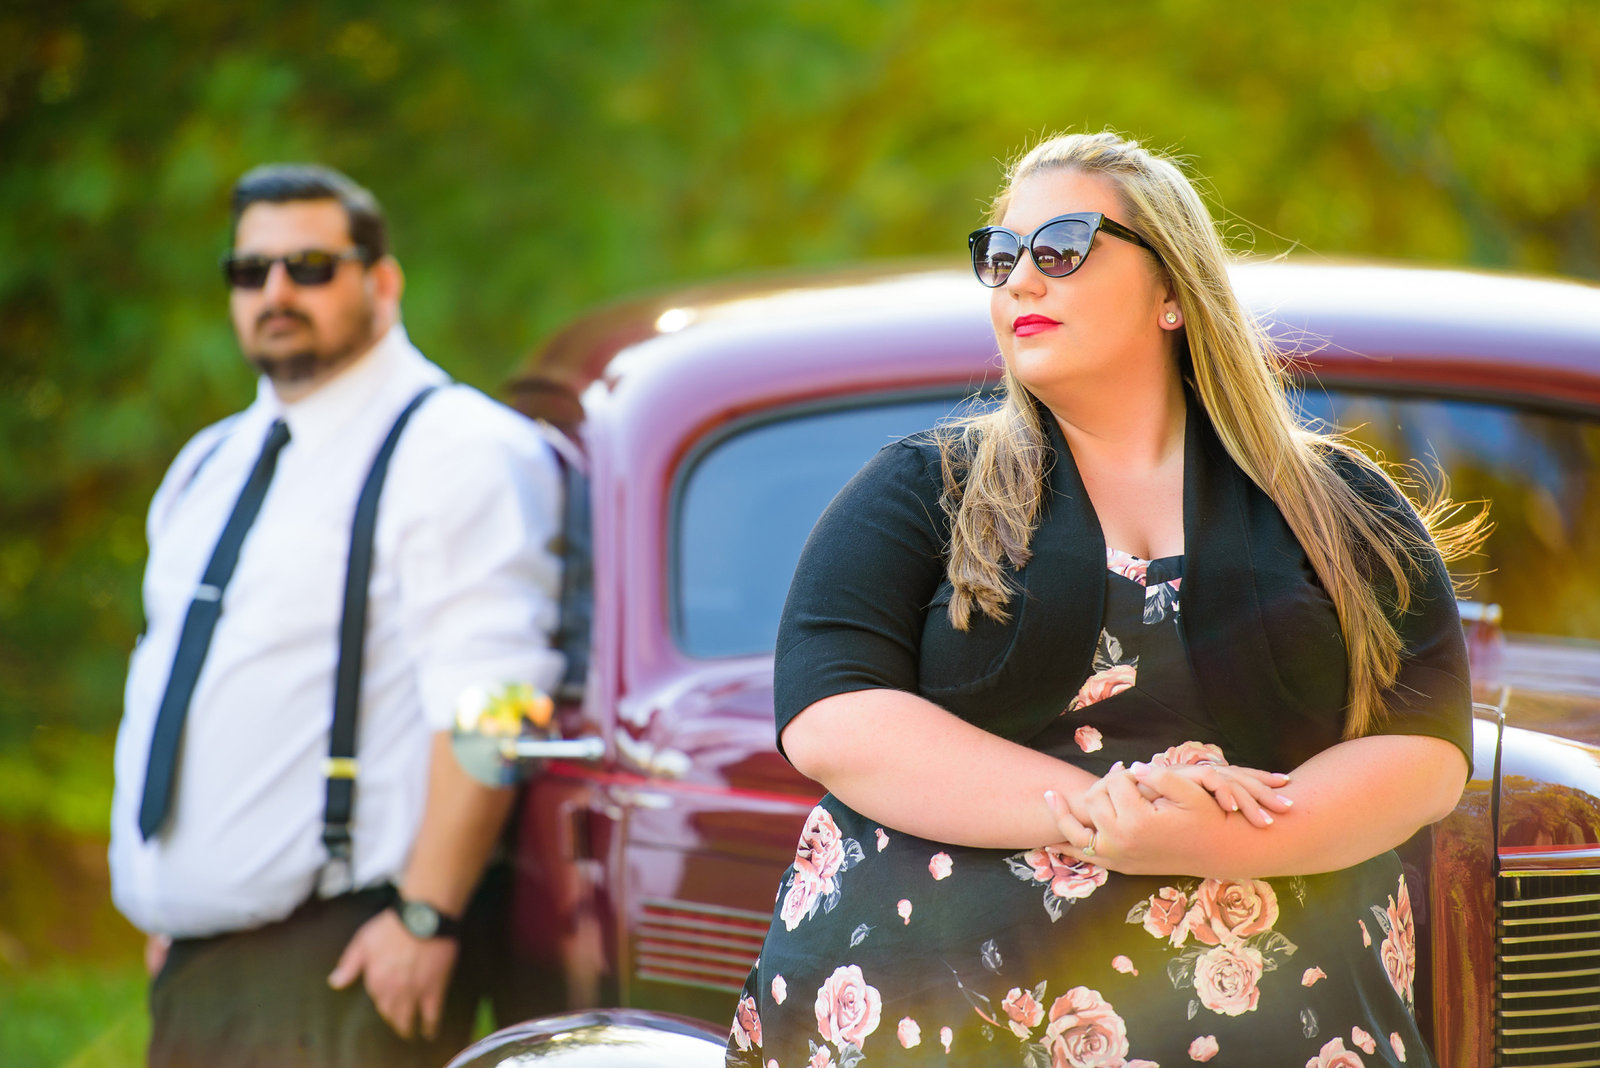 Retro_Pinup_Car_engagement_session_Nj017